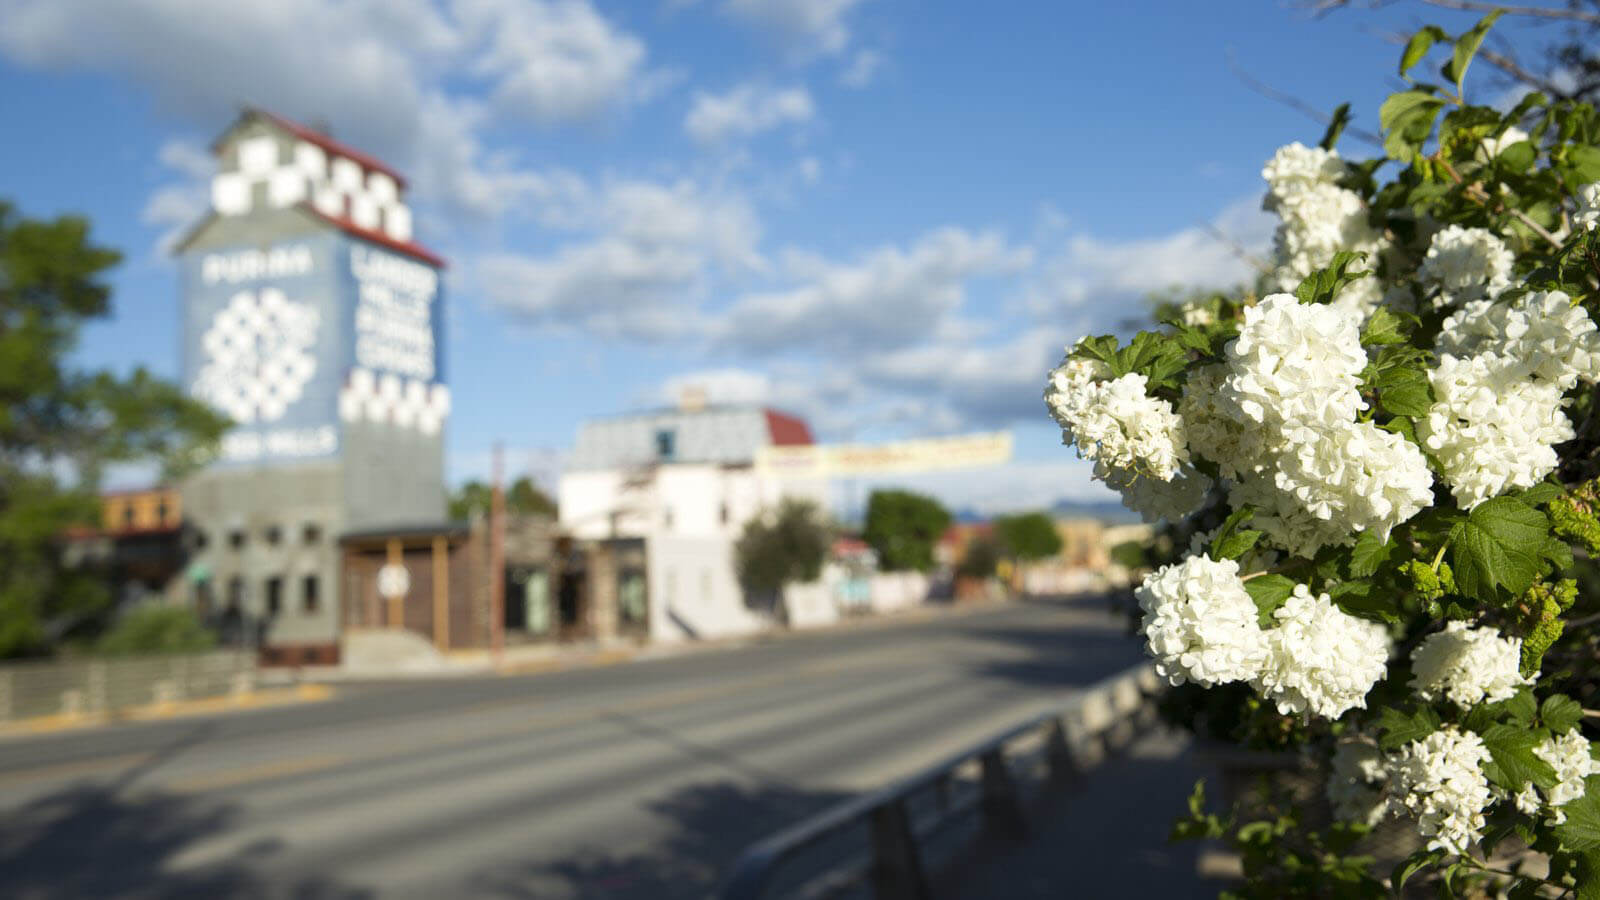 downtown Lander street with flowers